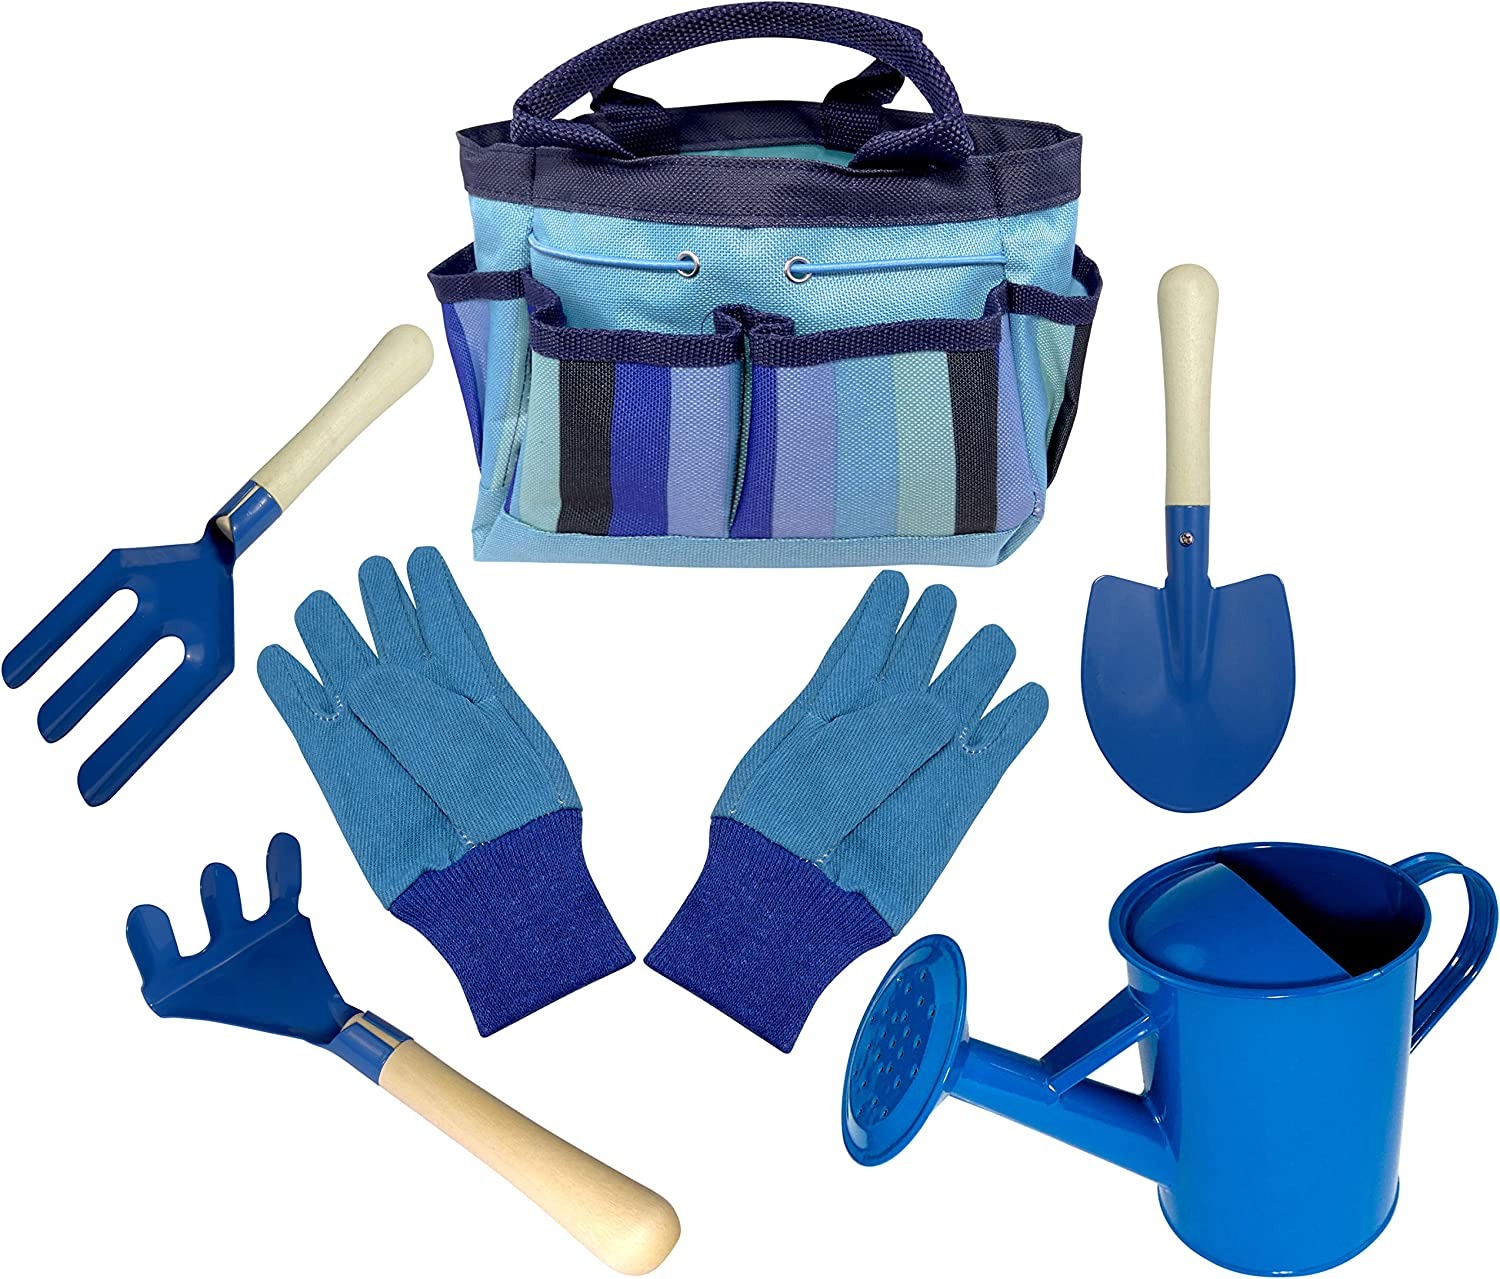 Kids Gardening Tool Set - Real Metal Child Sized Hand Tools with Wooden Handles & Safety Edges; Shovel, Rake & Pitch Fork - Plus Watering Can, Garden Gloves & Durable Canvas Carrying Bag. Blue